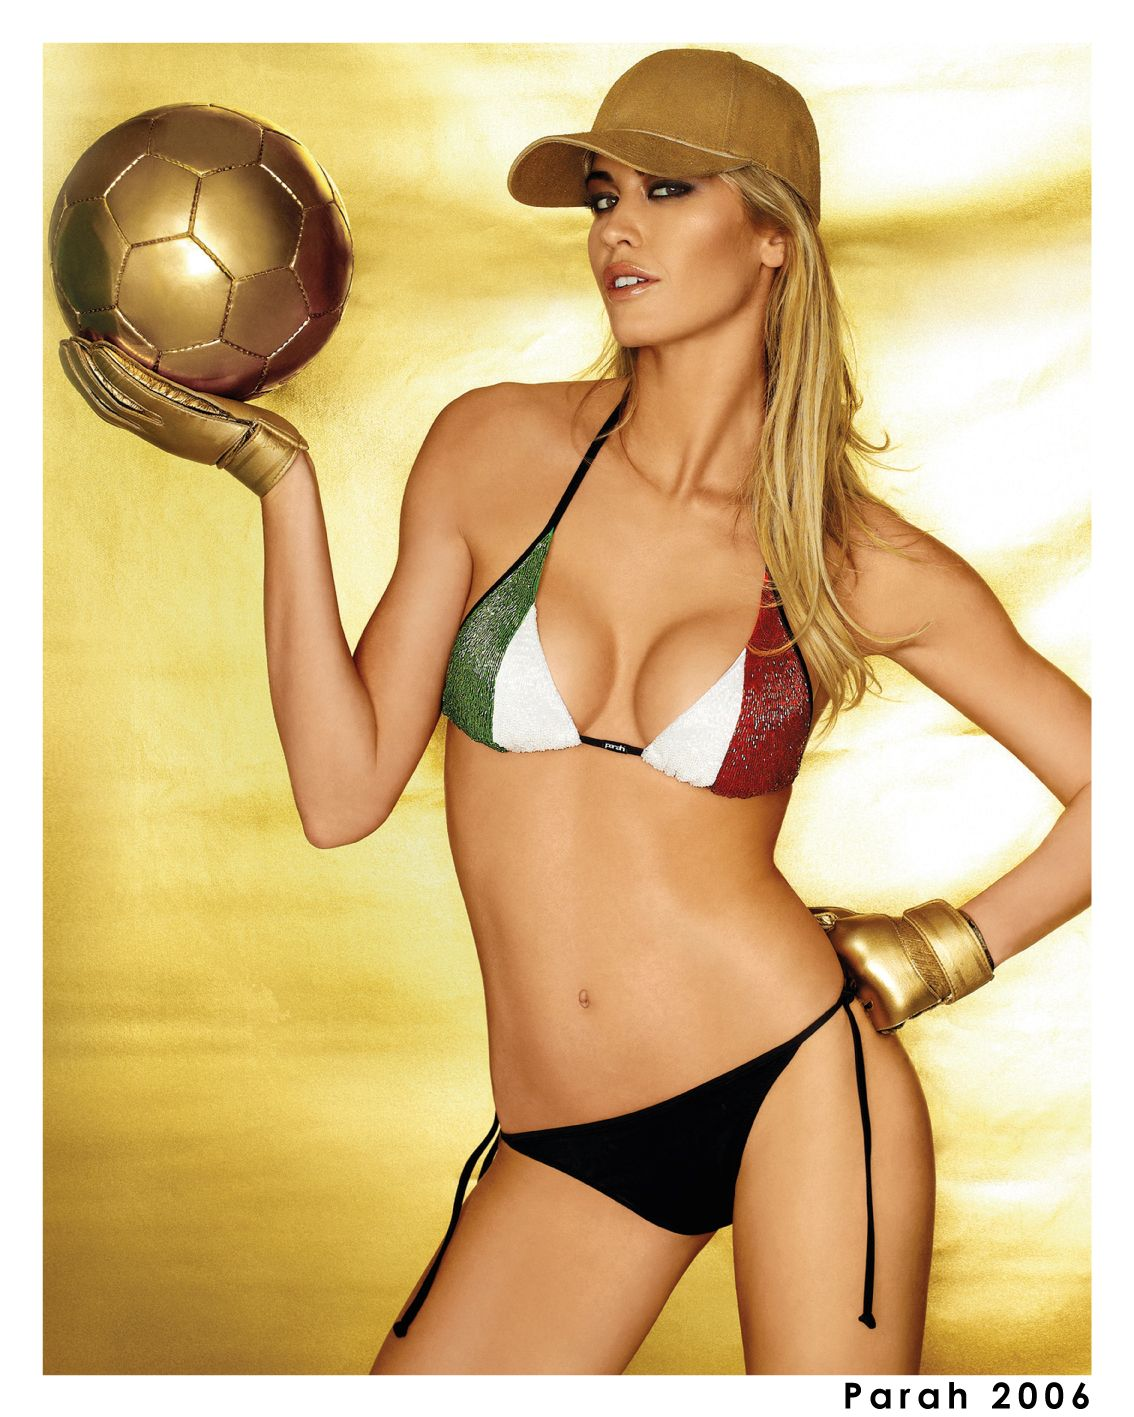 Parah celebrates #ItalianNationalFlagDay with a vintage picture: a limited edition created after Italy won the World Cup in 2006. Testimonial: Elena Santarelli! Subscribe to our newsletter to receive the latest news: http://bit.ly/ParahNewsLetterEn